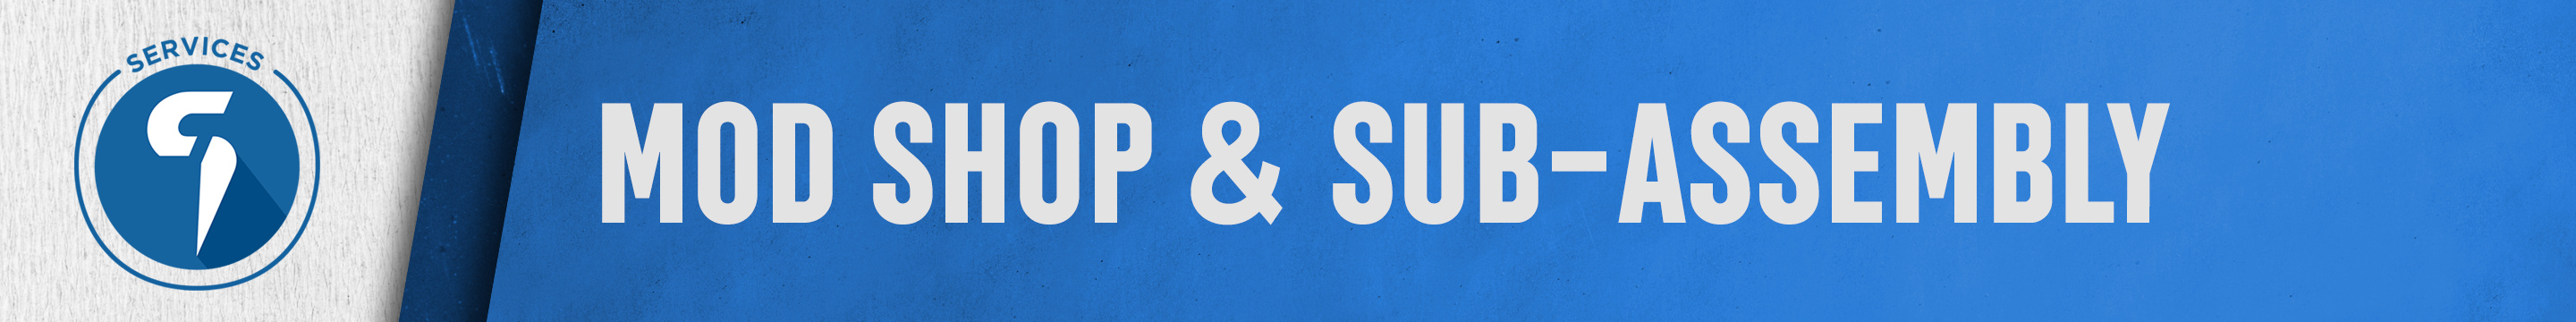 Mod Shop & Sub-Assembly Banner